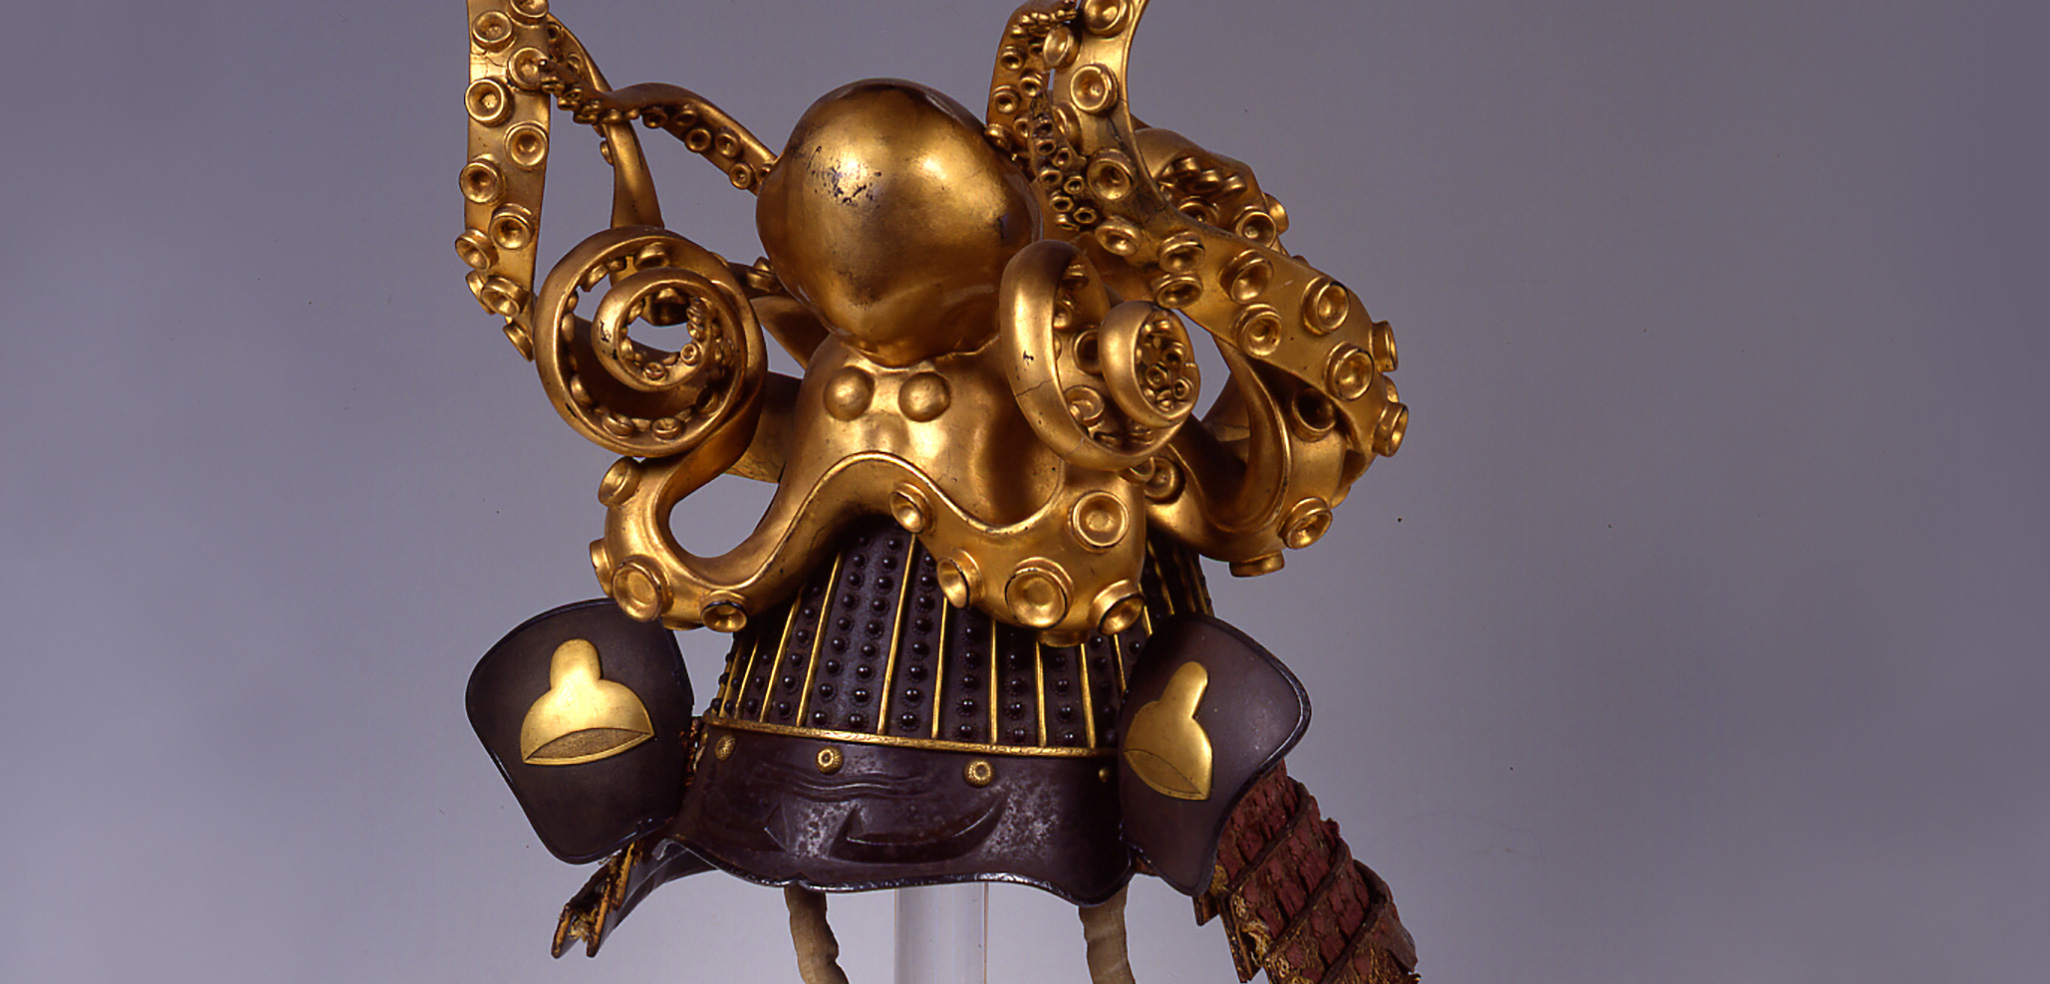 samurai helmet with octopus topper